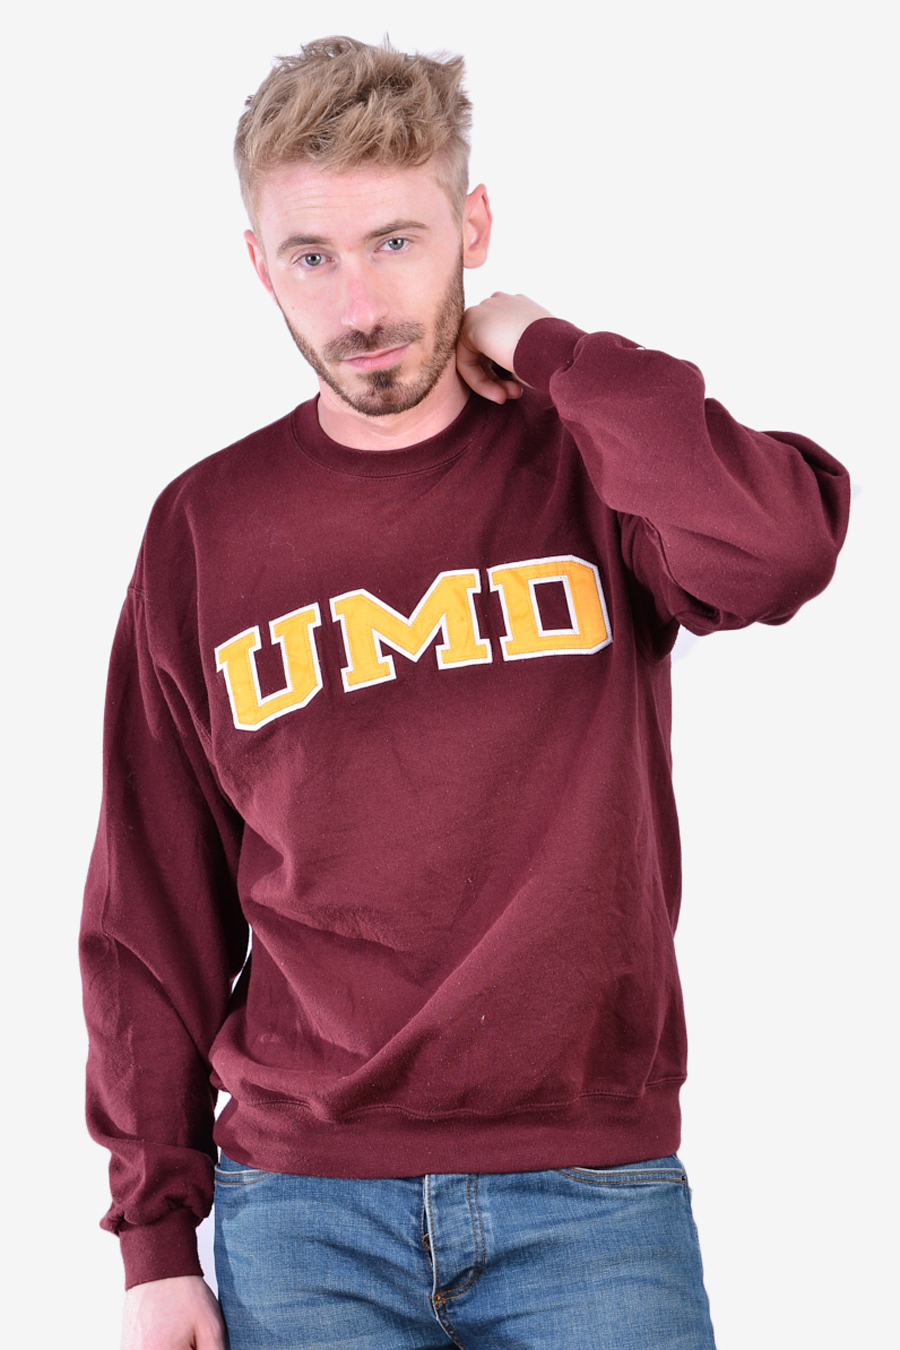 Vintage University Of Minnesota Duluth sweatshirt